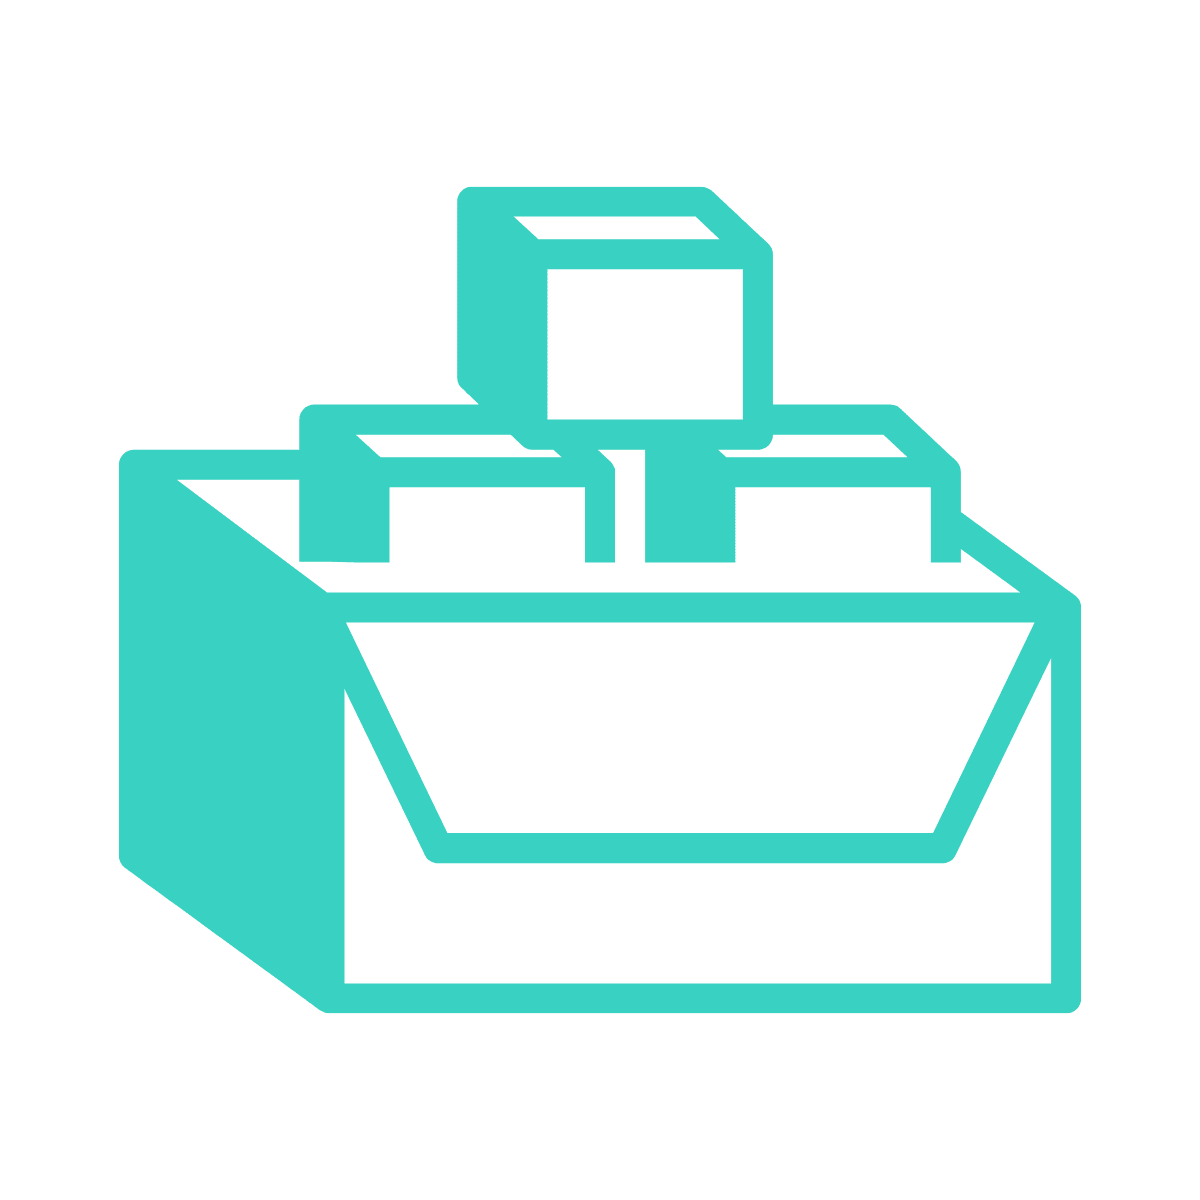 Unlimited revisions teal icon